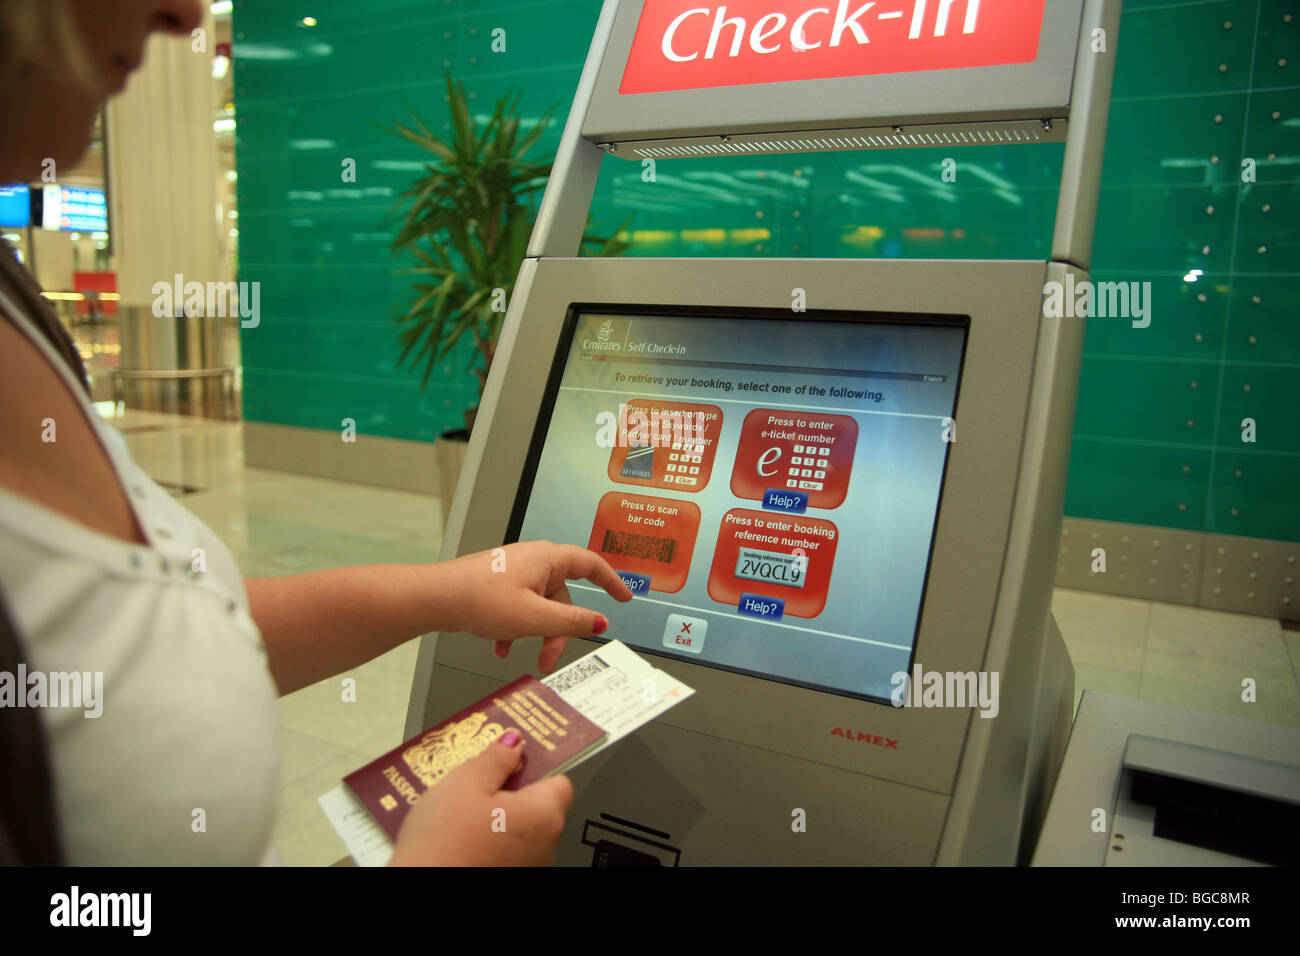 Self-check in and using a passport scanner at Dubai Airport